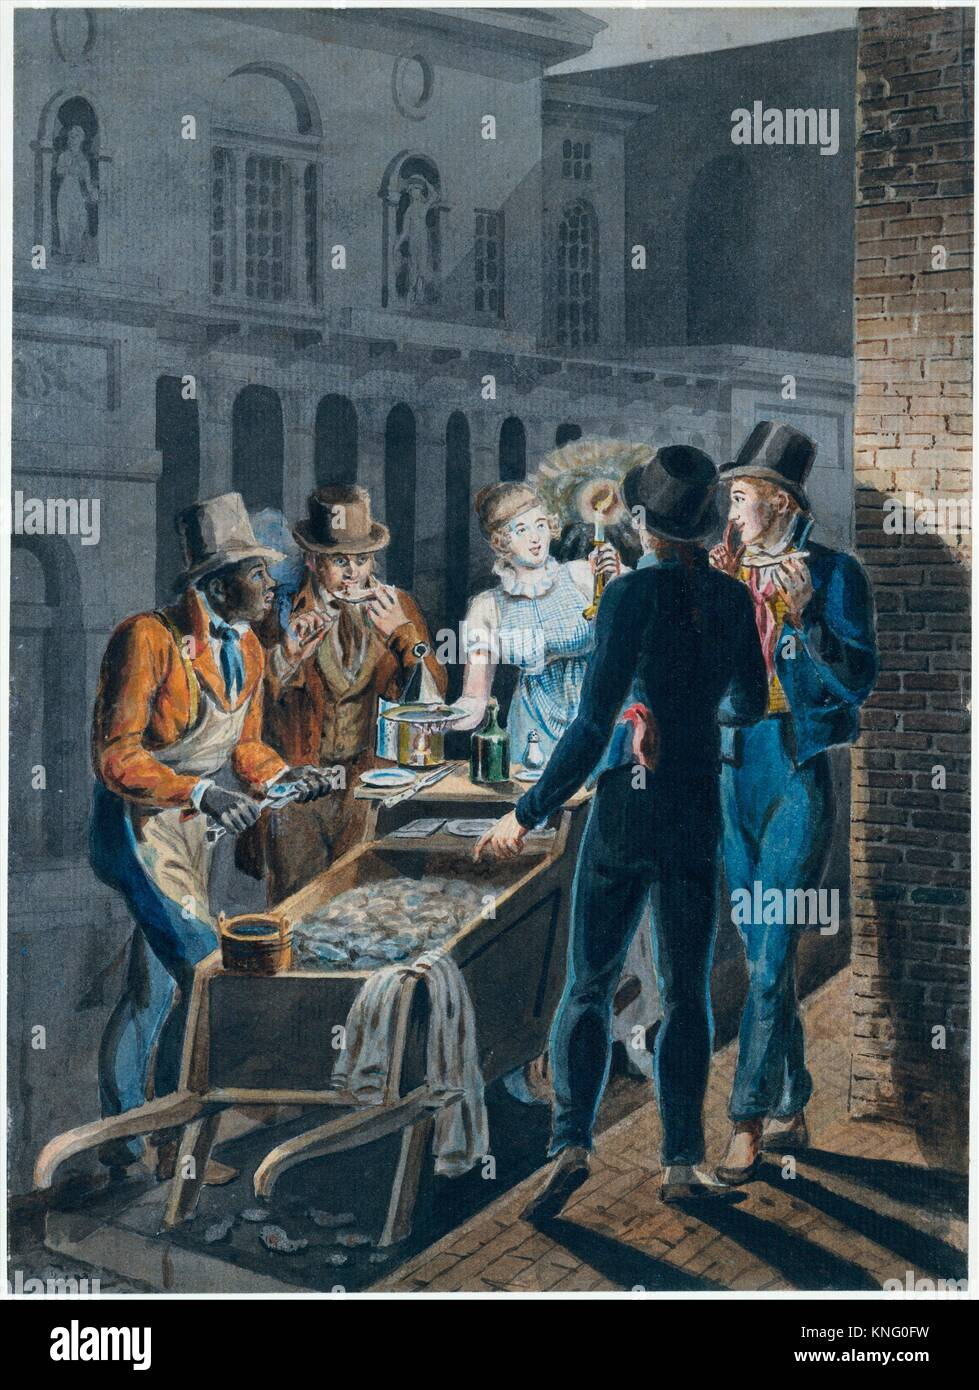 Nightlife in Philadelphia-an Oyster Barrow in front of the Chestnut Street Theater. Artist: Attributed to John Lewis - Stock Image